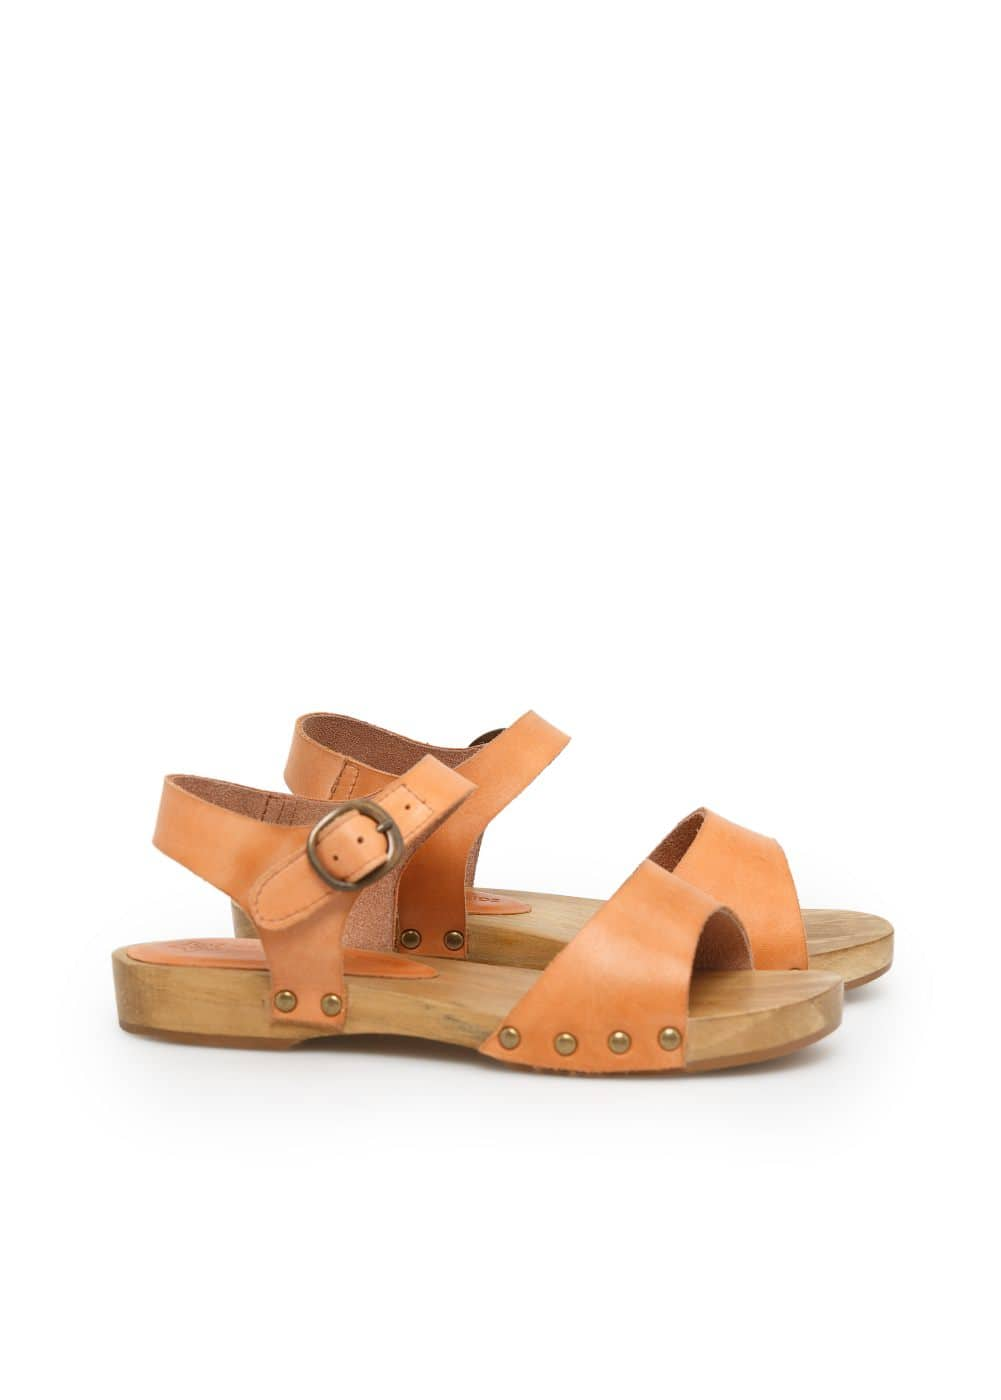 Wooden leather sandals